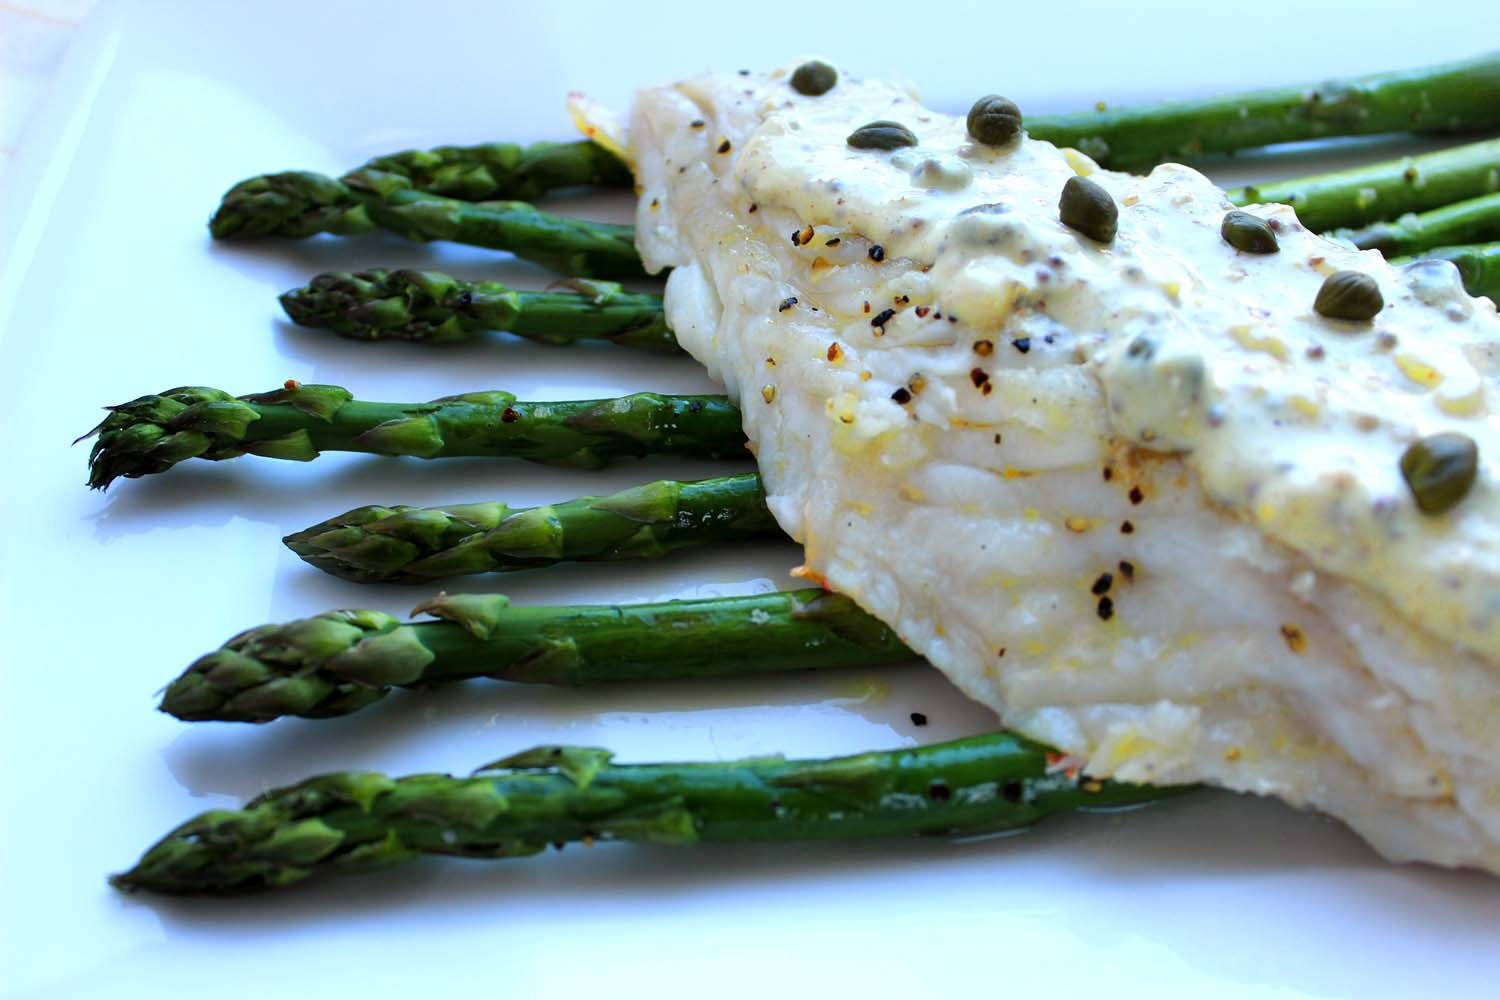 Pan Sautéed Red Snapper with Mustard Sauce  | Image:  Laura Messersmith